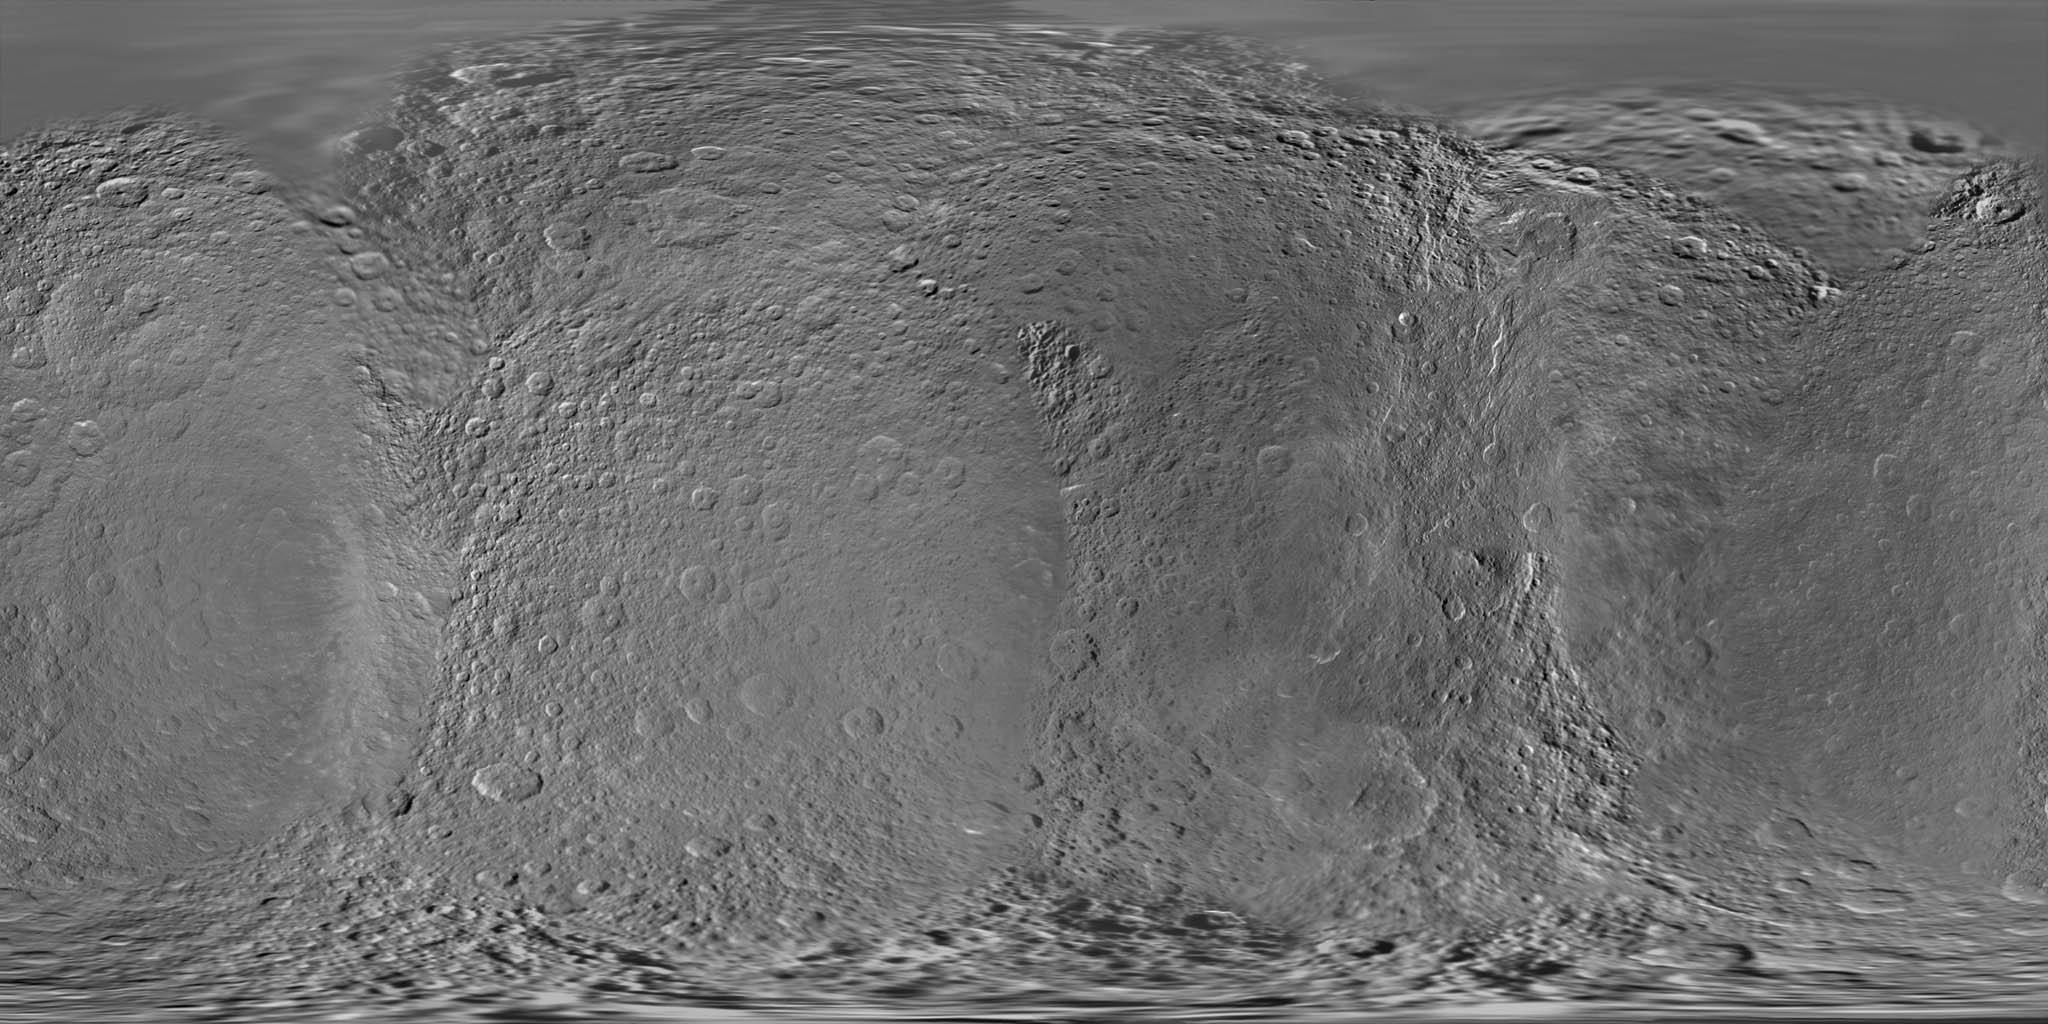 This global digital map of Saturn's moon Rhea was created using data obtained by NASA's Cassini and Voyager spacecraft.